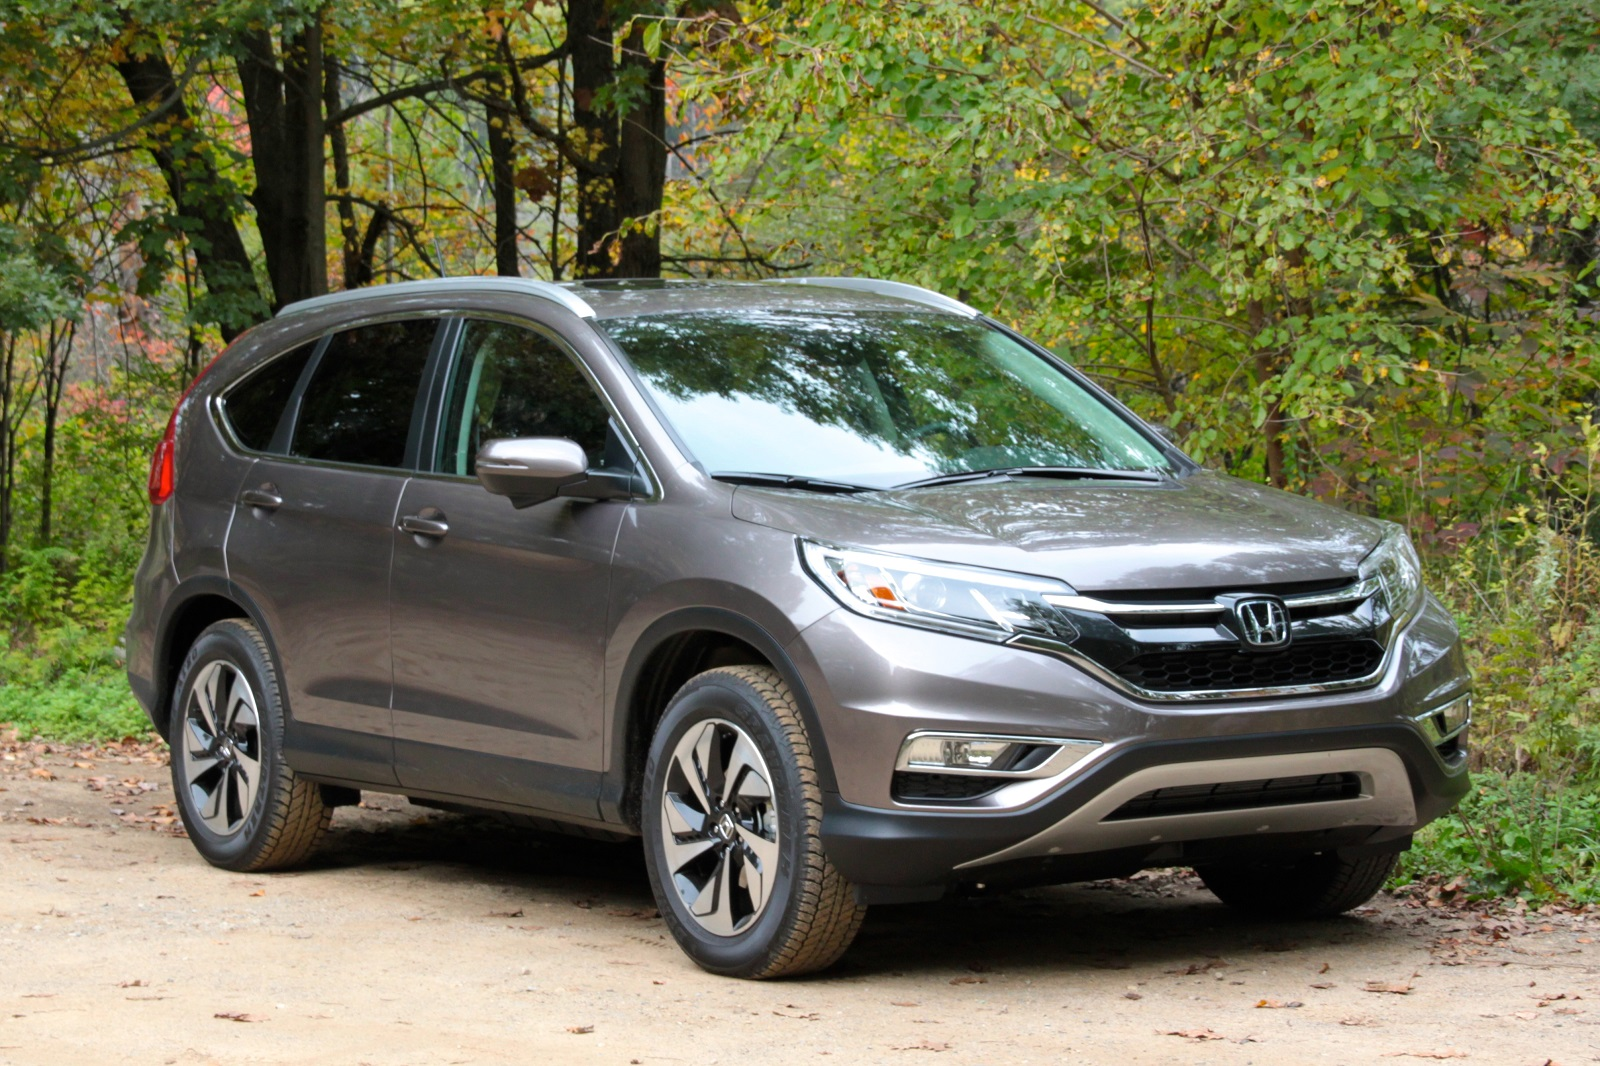 2015 honda cr v gas mileage test of updated crossover suv. Black Bedroom Furniture Sets. Home Design Ideas